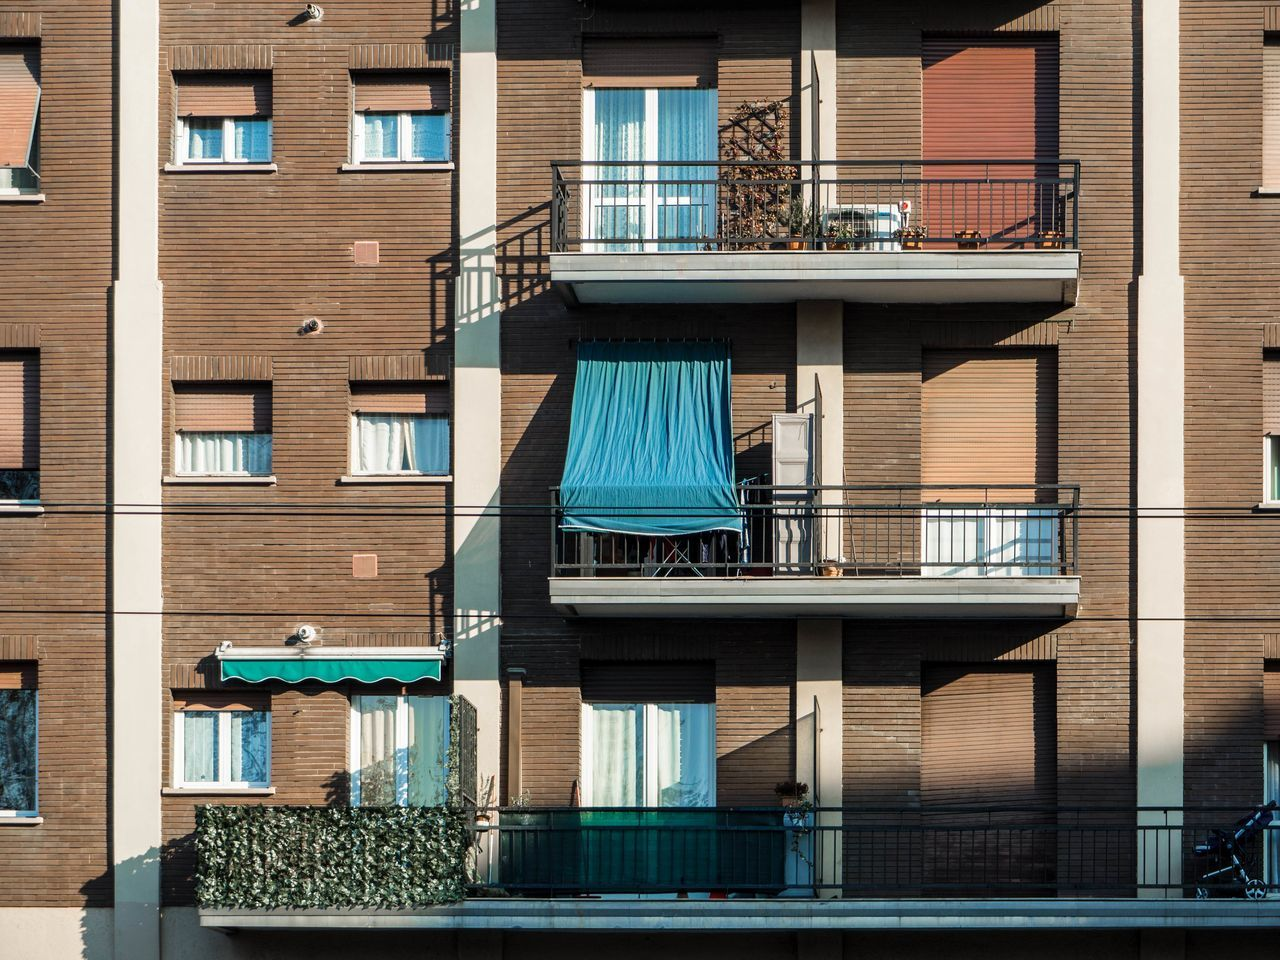 Apartment Buildings Apartments Architecture Awnings Balconies Balconies In The Building Blinds Brick Brick Building Brick Wall Building Building Exterior Building Exteriors Built Structure Condominium Day Facade Building Facades No People Outdoors Palace Railing Stroller Sunny Building Windows